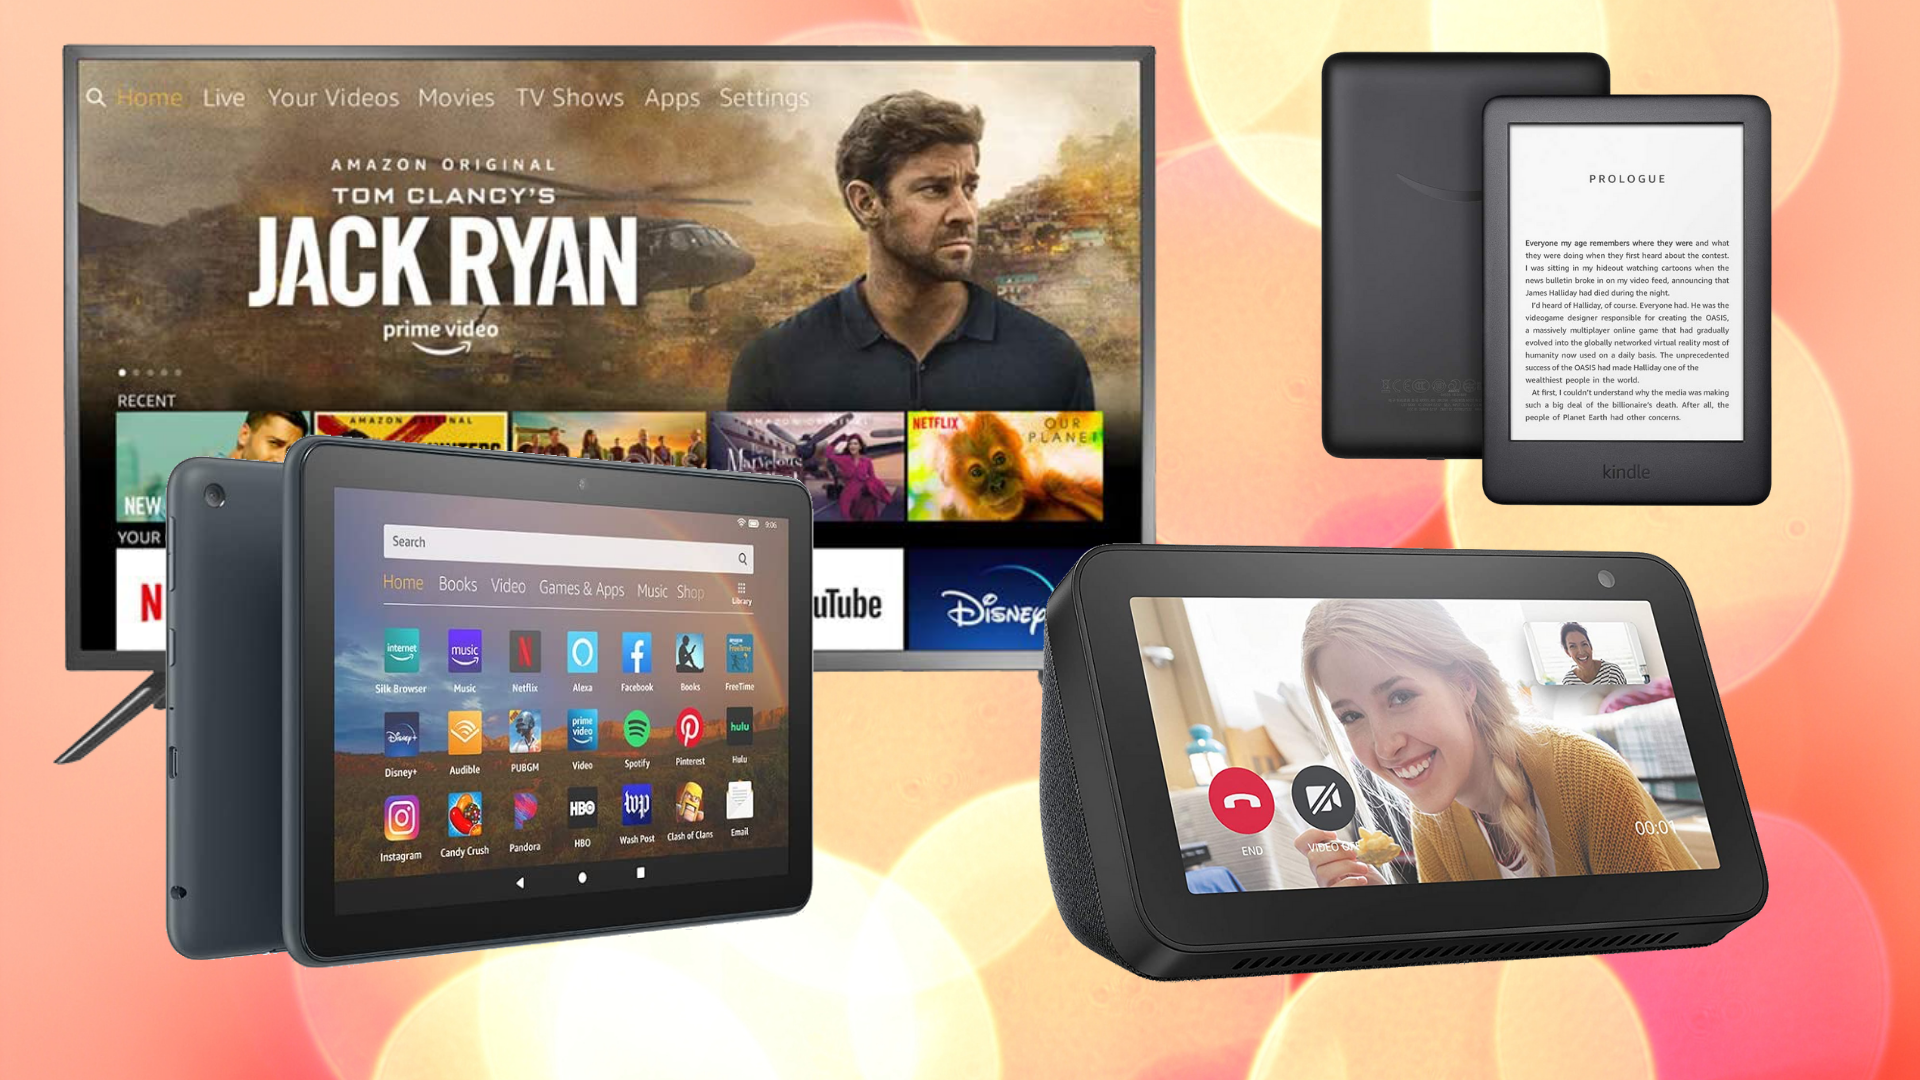 Amazon just slashed up to 80 percent off tons of Kindles, Echo devices and more for Presidents' Day! - Yahoo Entertainment